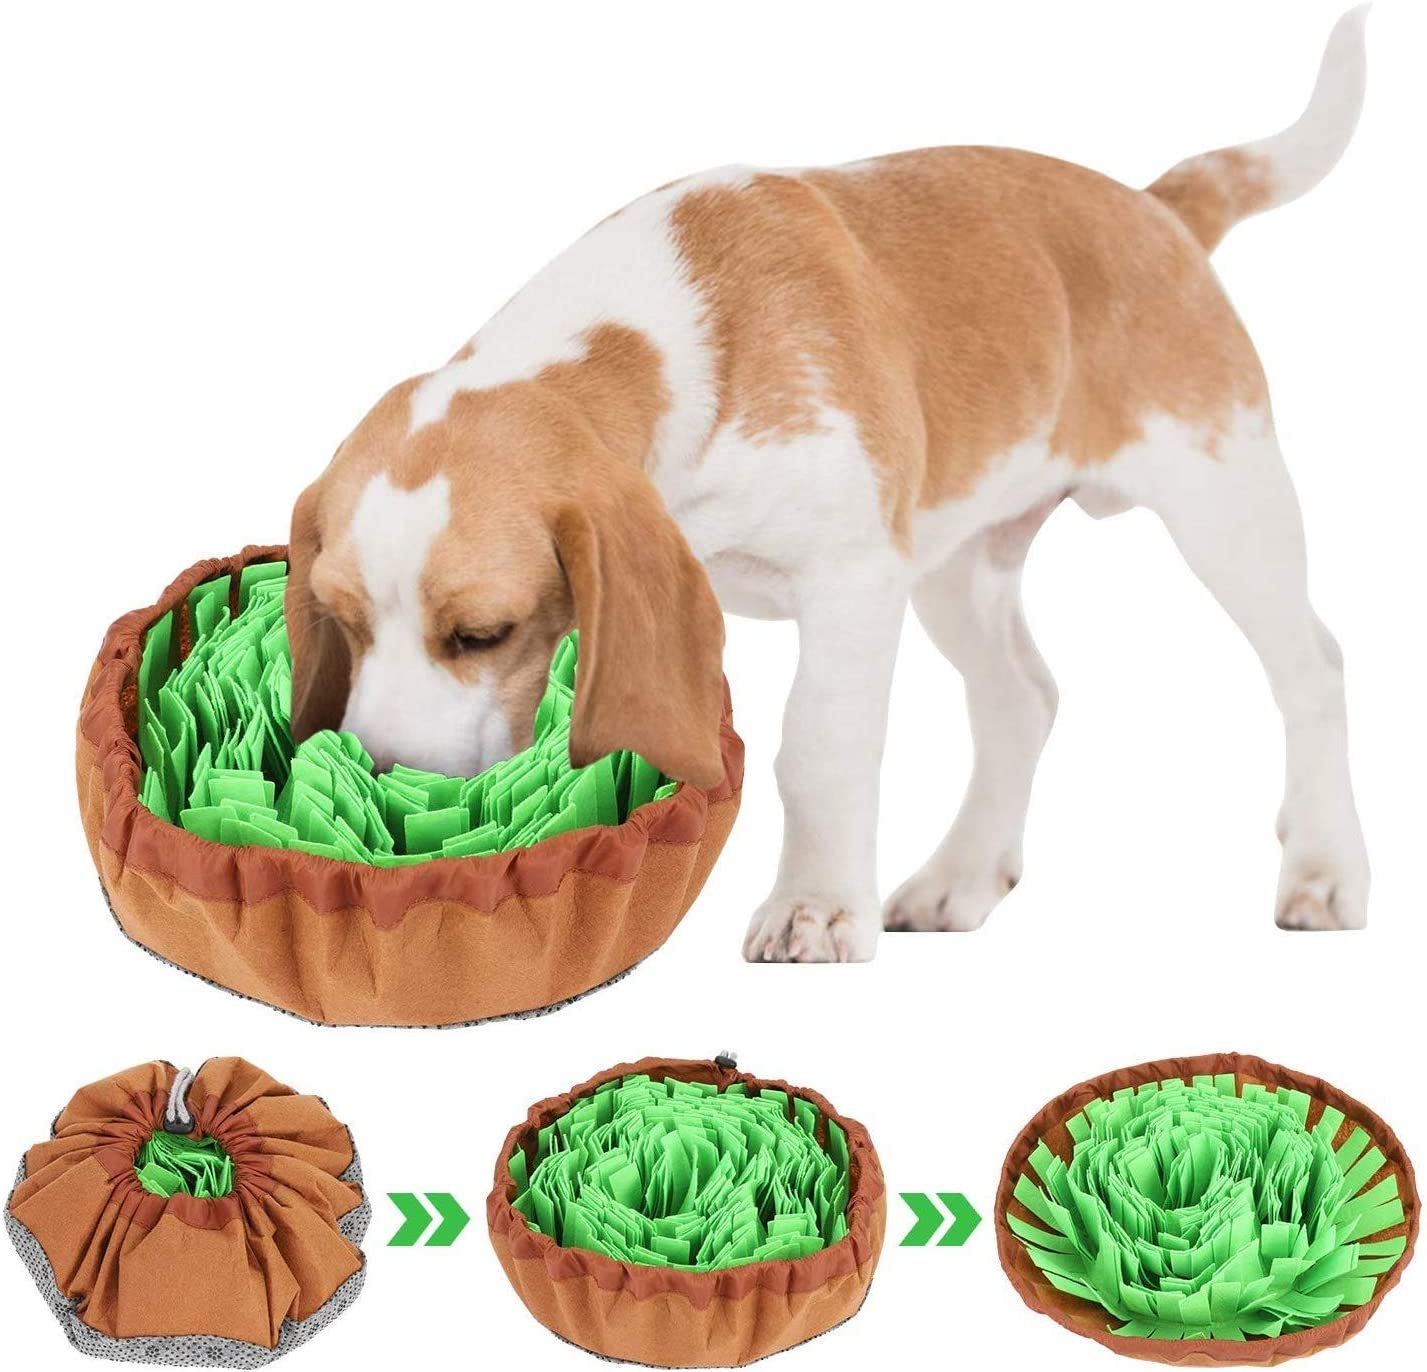 Dog Puzzle Toys, Snuffle Mat for Dogs, Dog Feeding Mat, Pet Maze Food Bowl Used for Slow Feeding and Smell Training Good for Dog Health and Releasing Pressure, Adjustable Size, Portable, and Washable